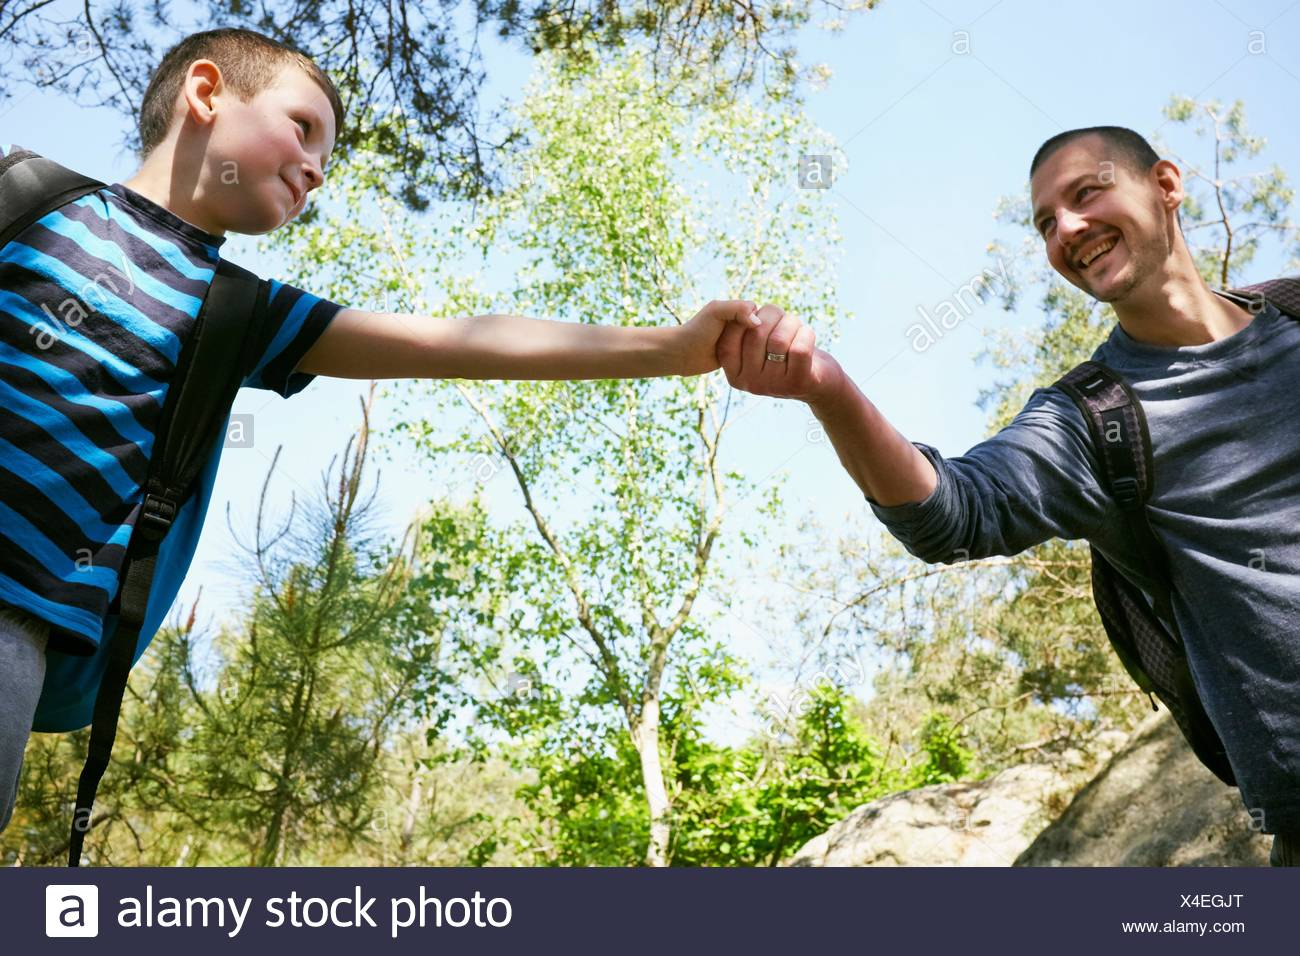 Male hiker giving son a helping hand in forest - Stock Image